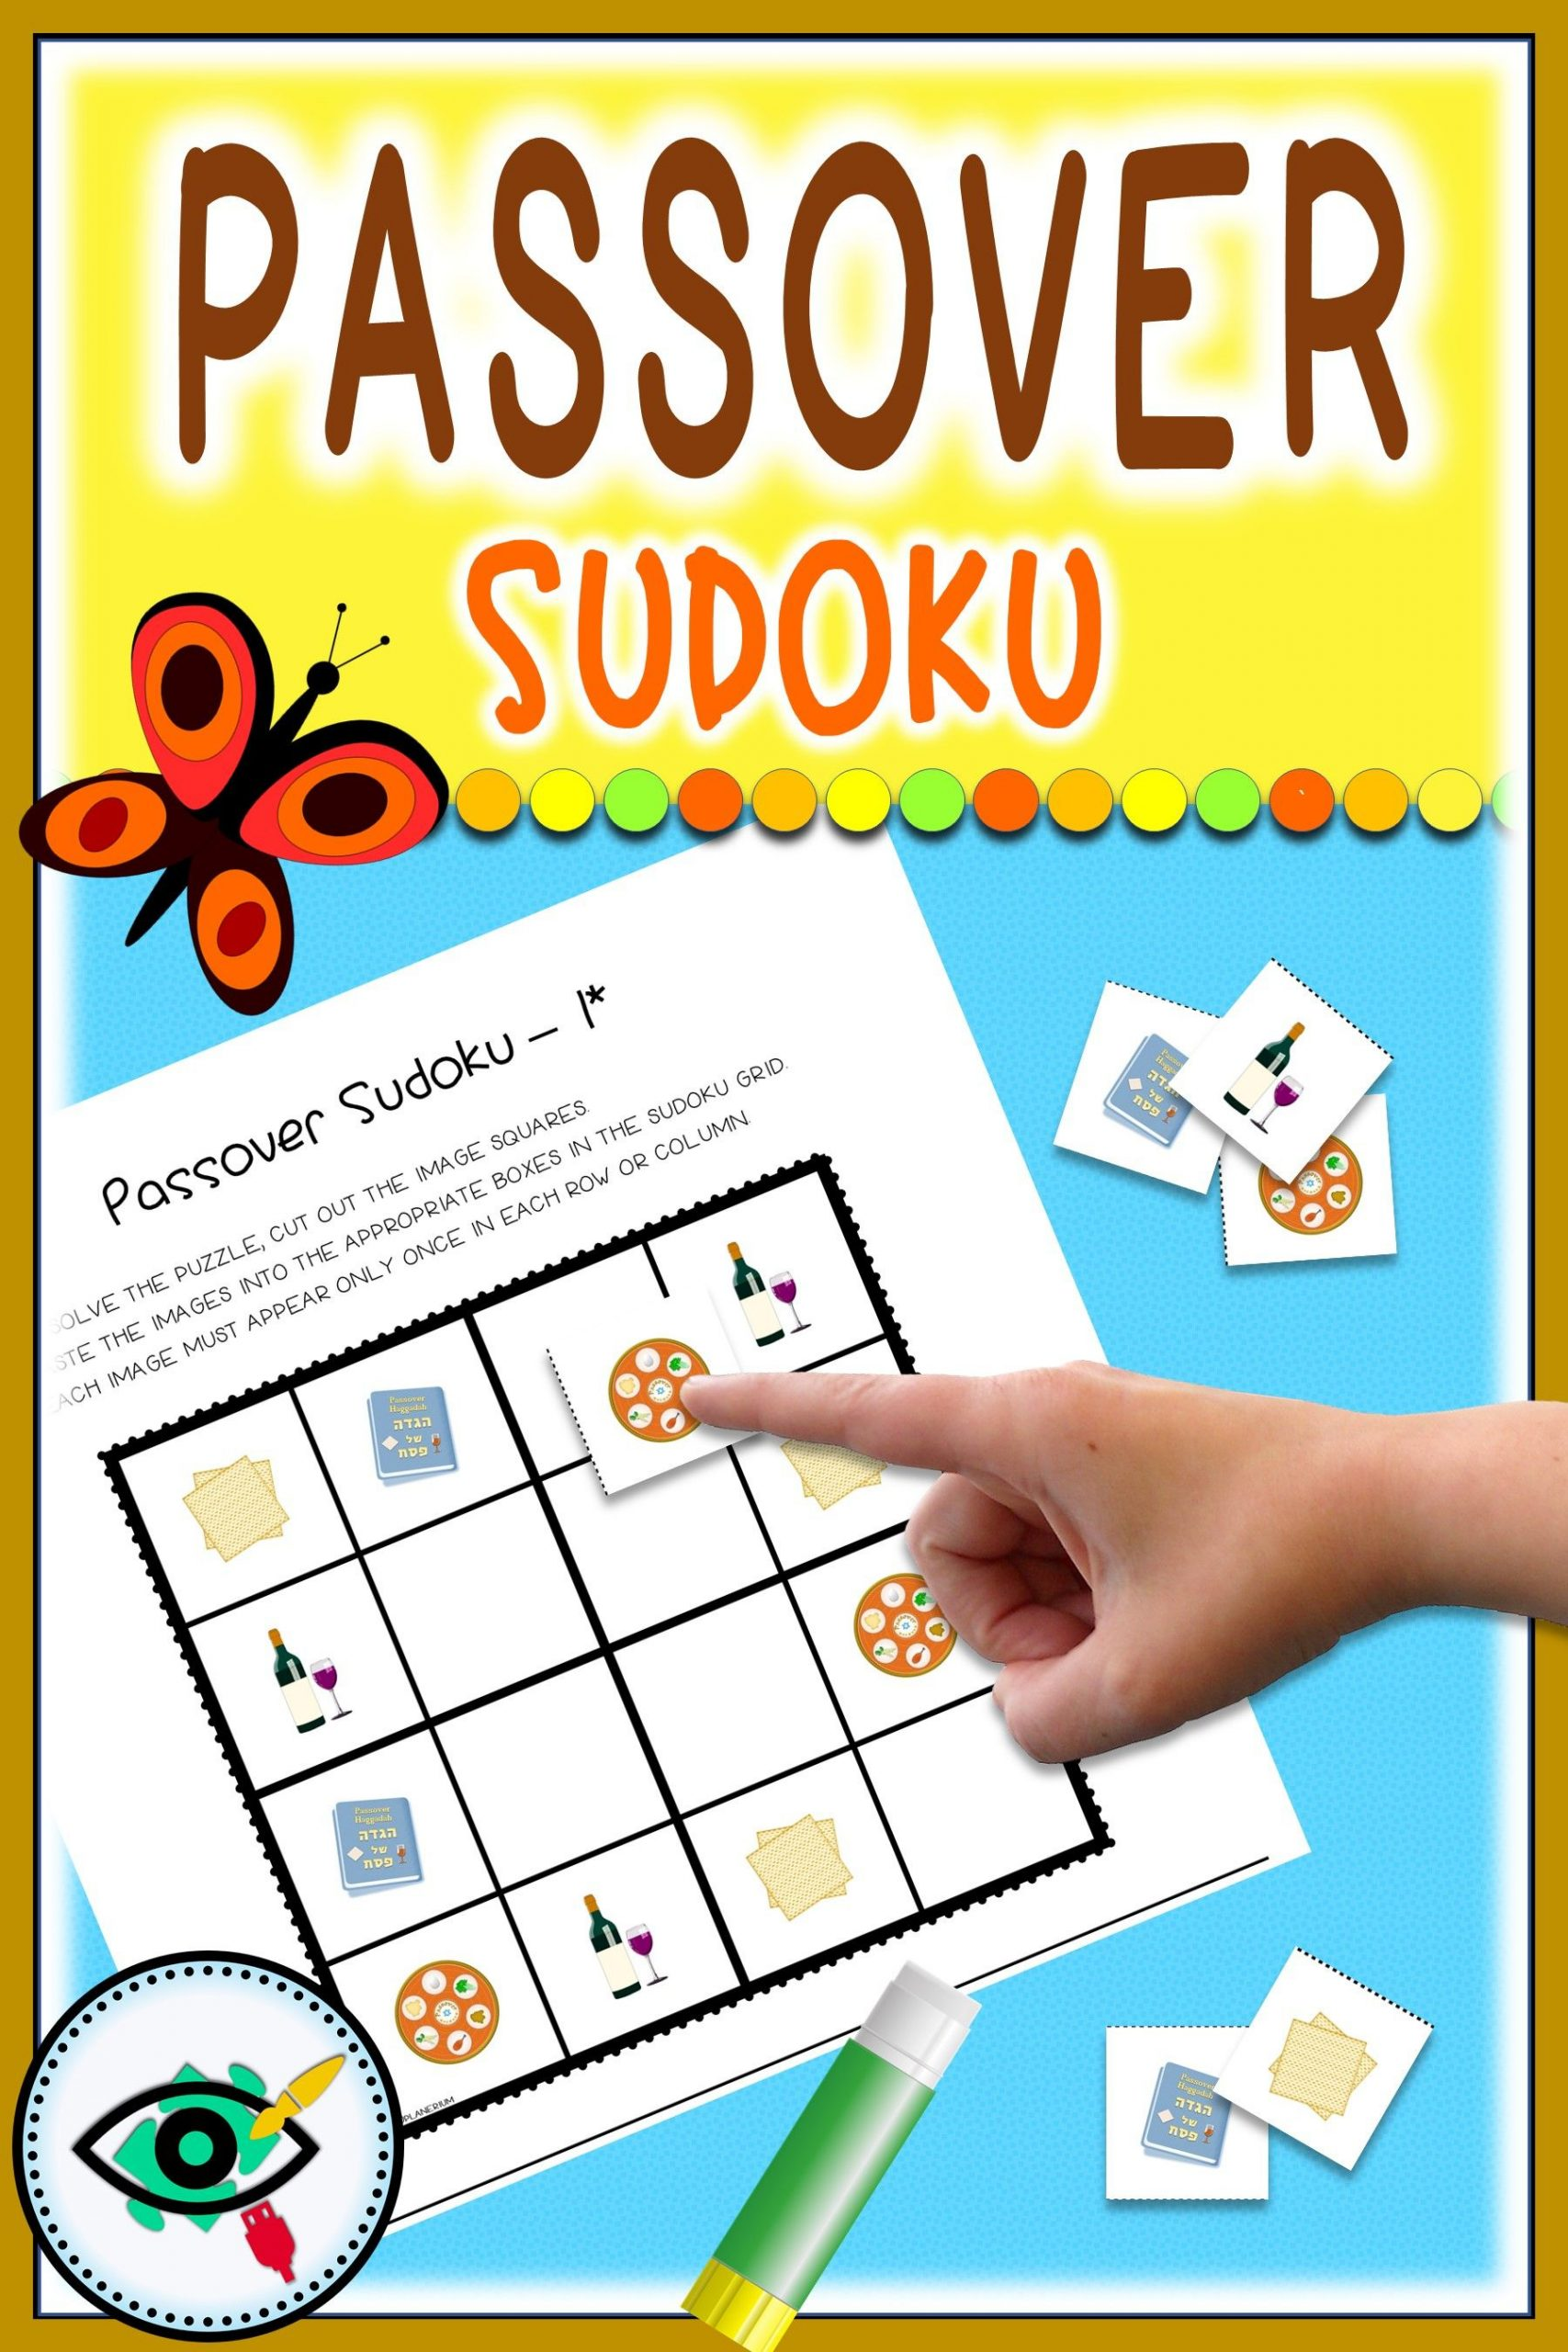 Passover Sudoku Game Printable | Games For Kids, First Grade